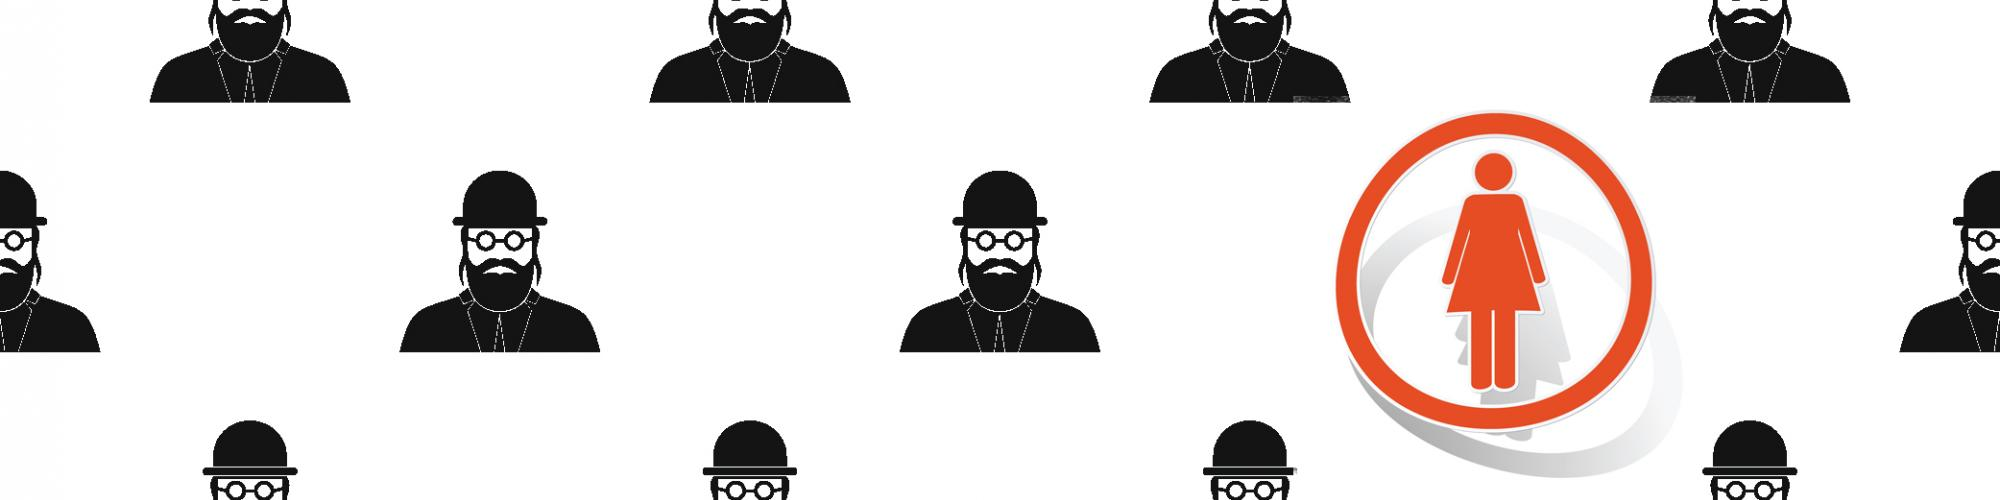 Women as orthodox jewish. Rabbi clipart religious leader